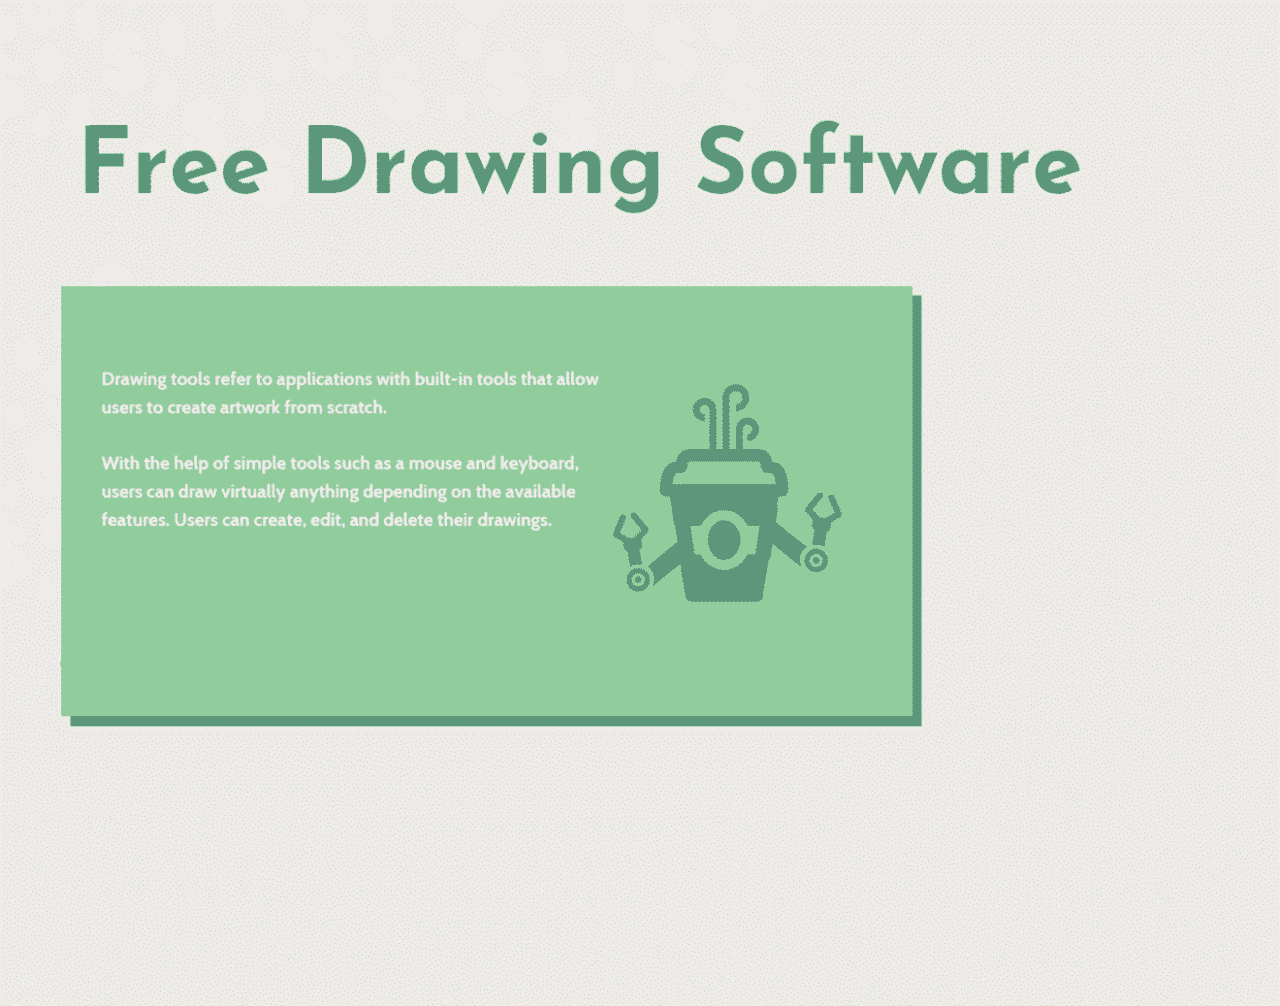 Top 17 Free Drawing Software In 2020 Reviews Features Pricing Comparison Pat Research B2b Reviews Buying Guides Best Practices